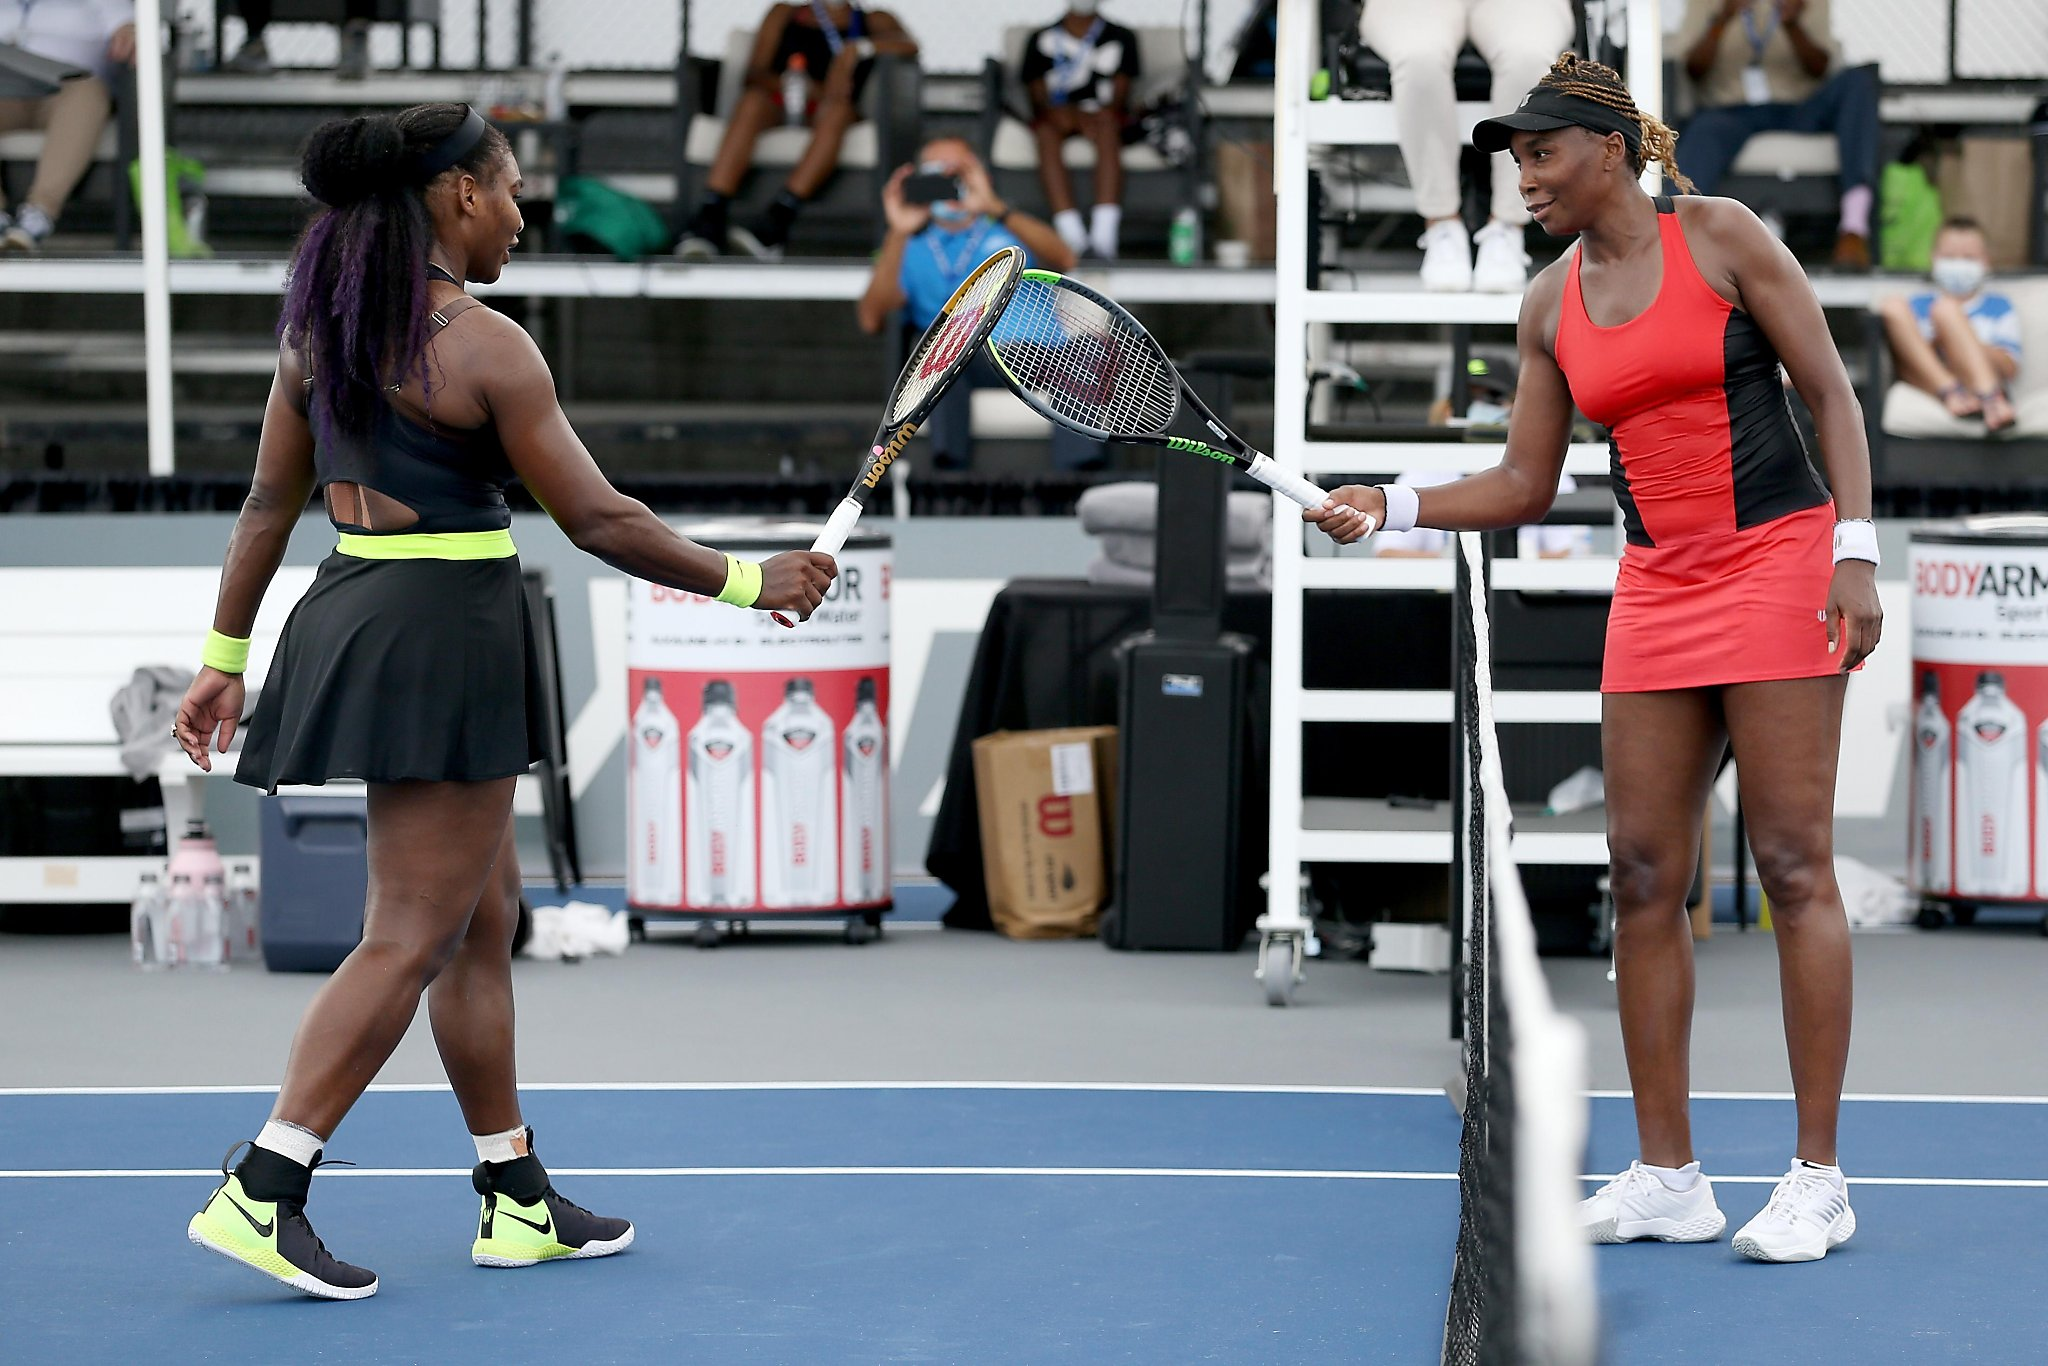 Sibling rivalry: Serena beats Venus to take 31st meeting - SFGate